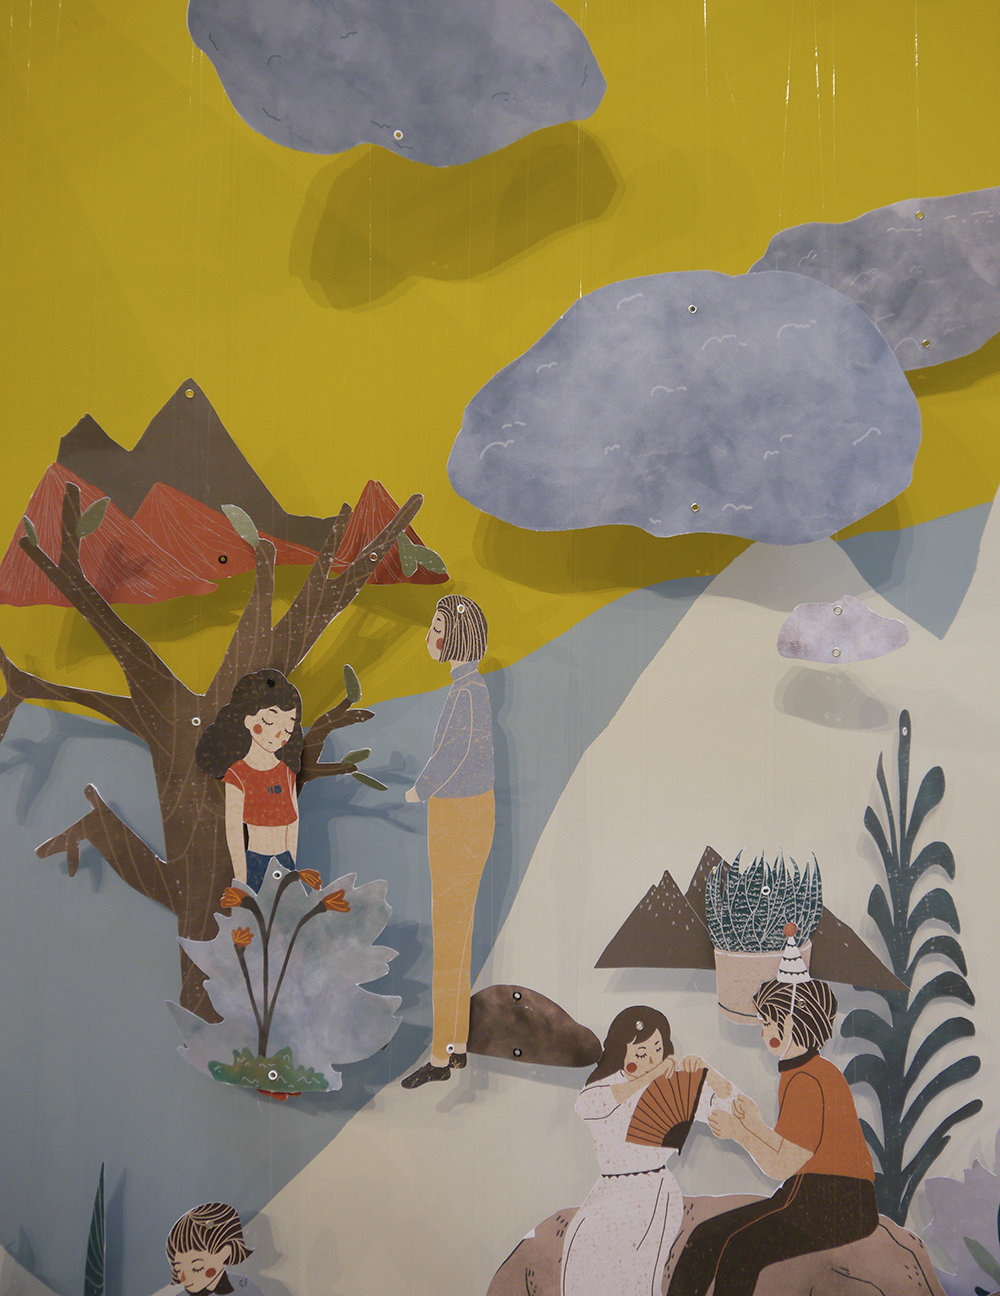 edinburgh college of art, masters degree show 2016, young artist Scotland, contemporary scottish art, xin liu graphic deisgn, the story of the stone in illustration